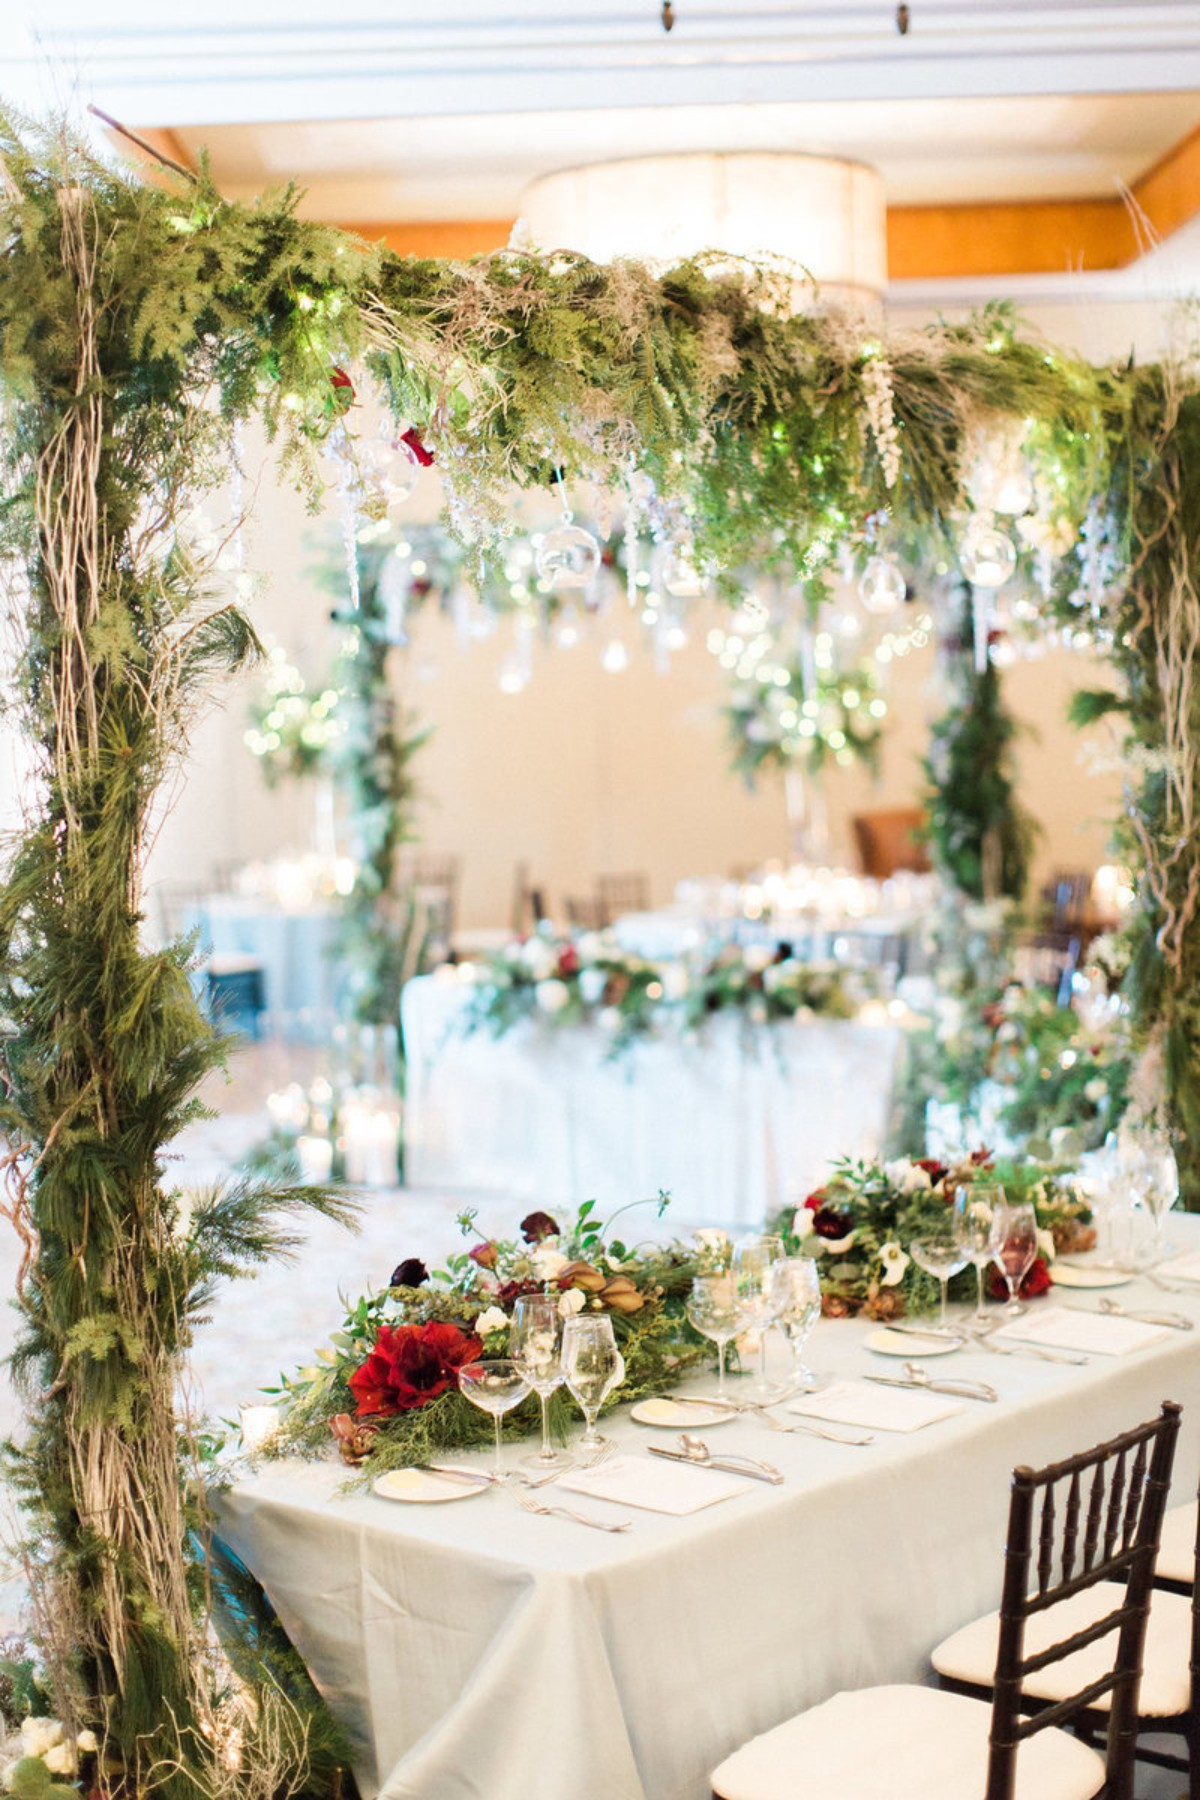 Greenery for a winter wedding